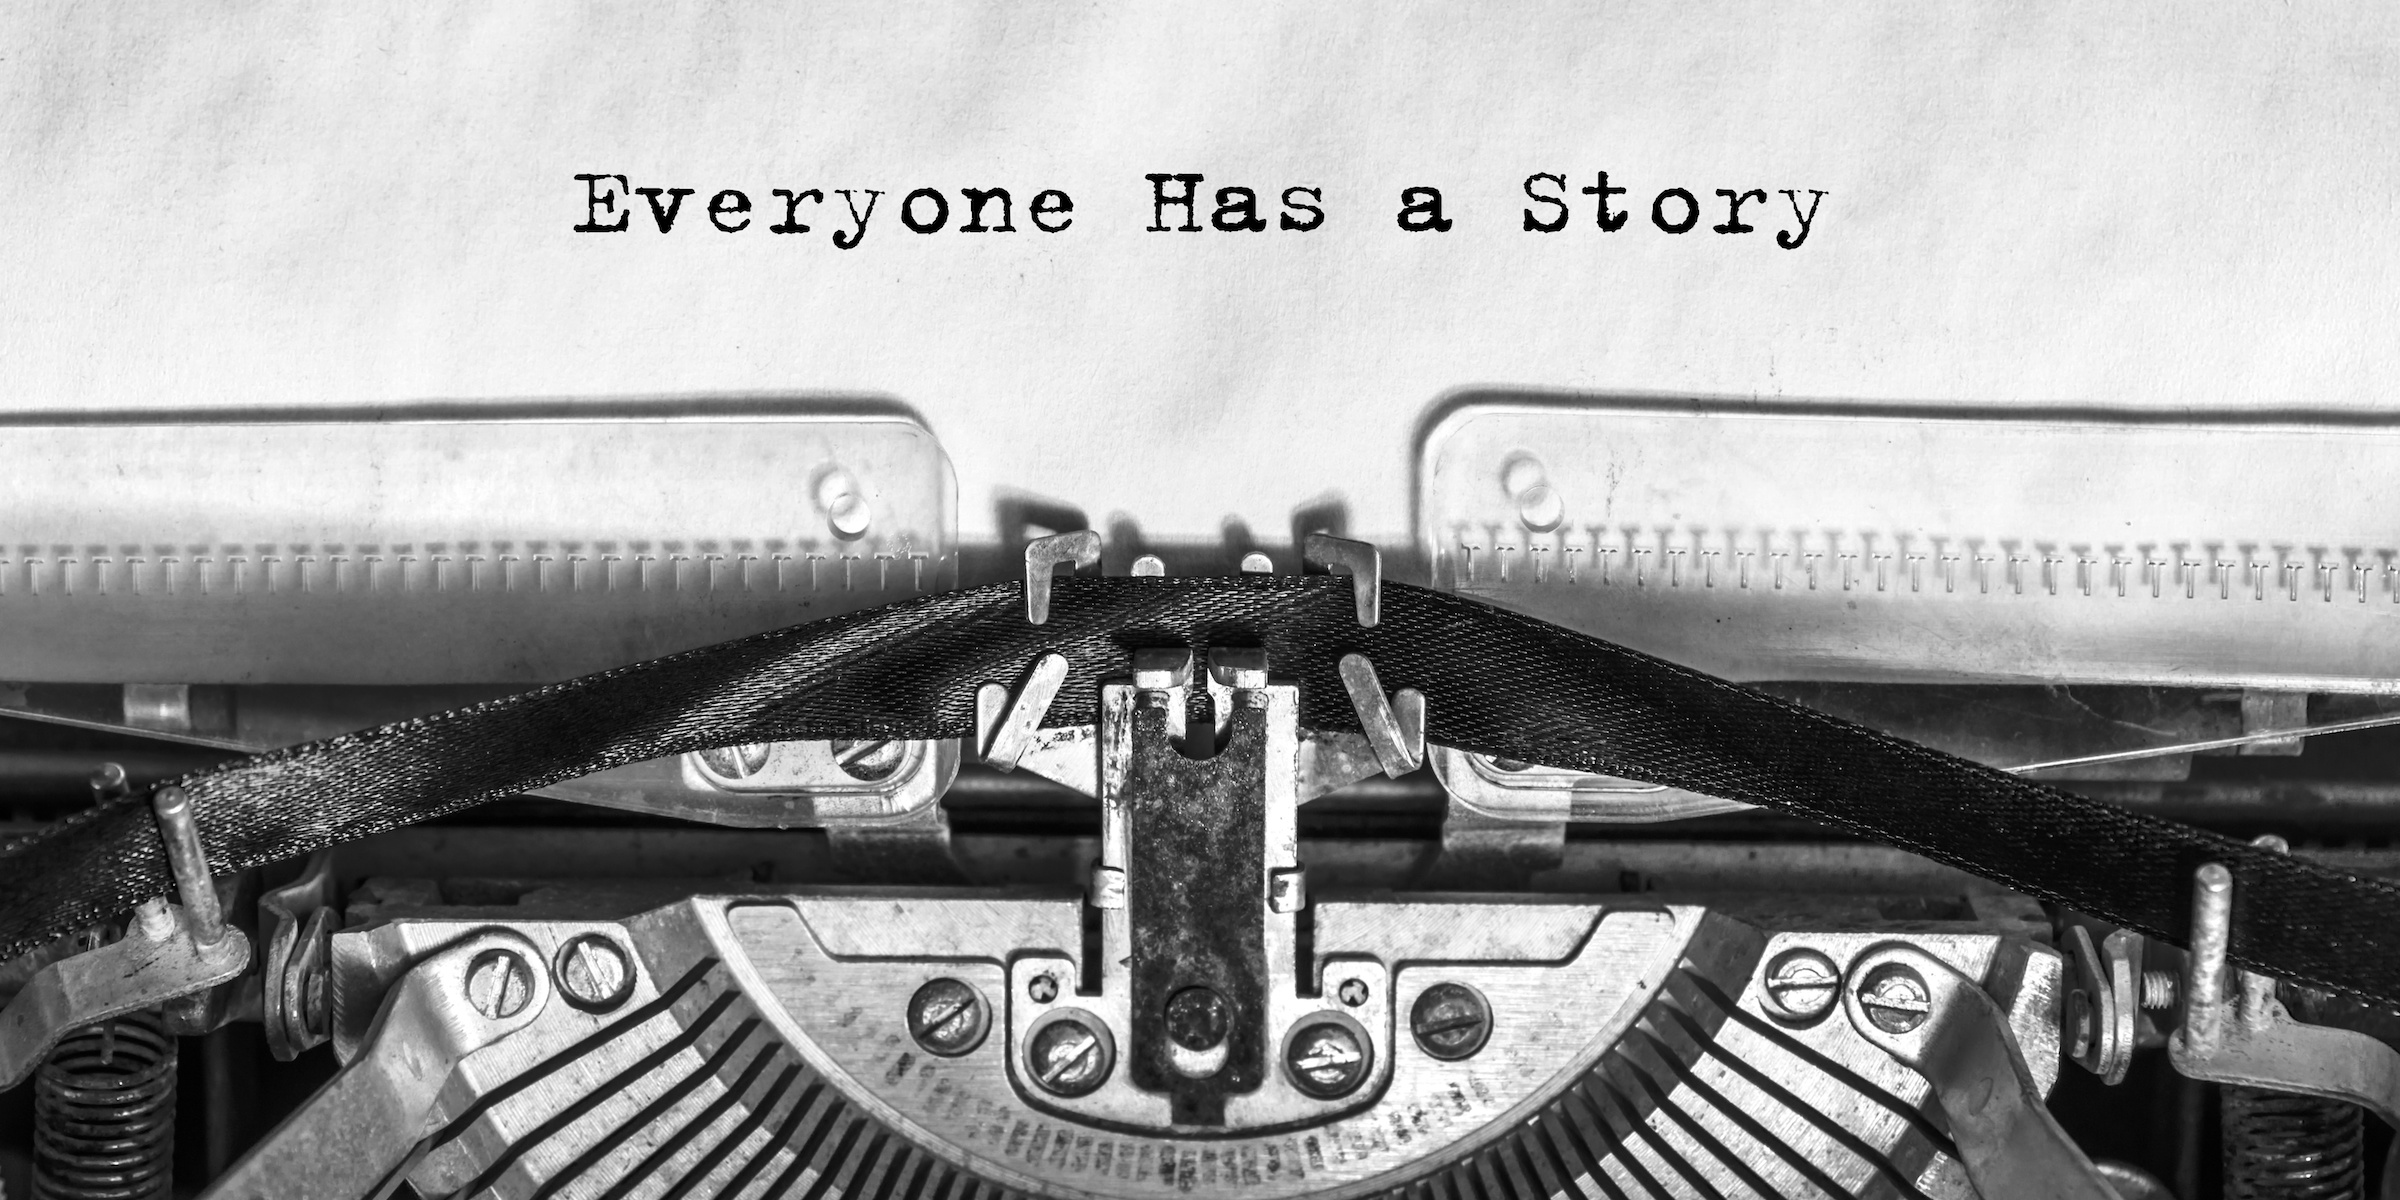 10 Sales Leaders Who've Mastered the Art of Storytelling